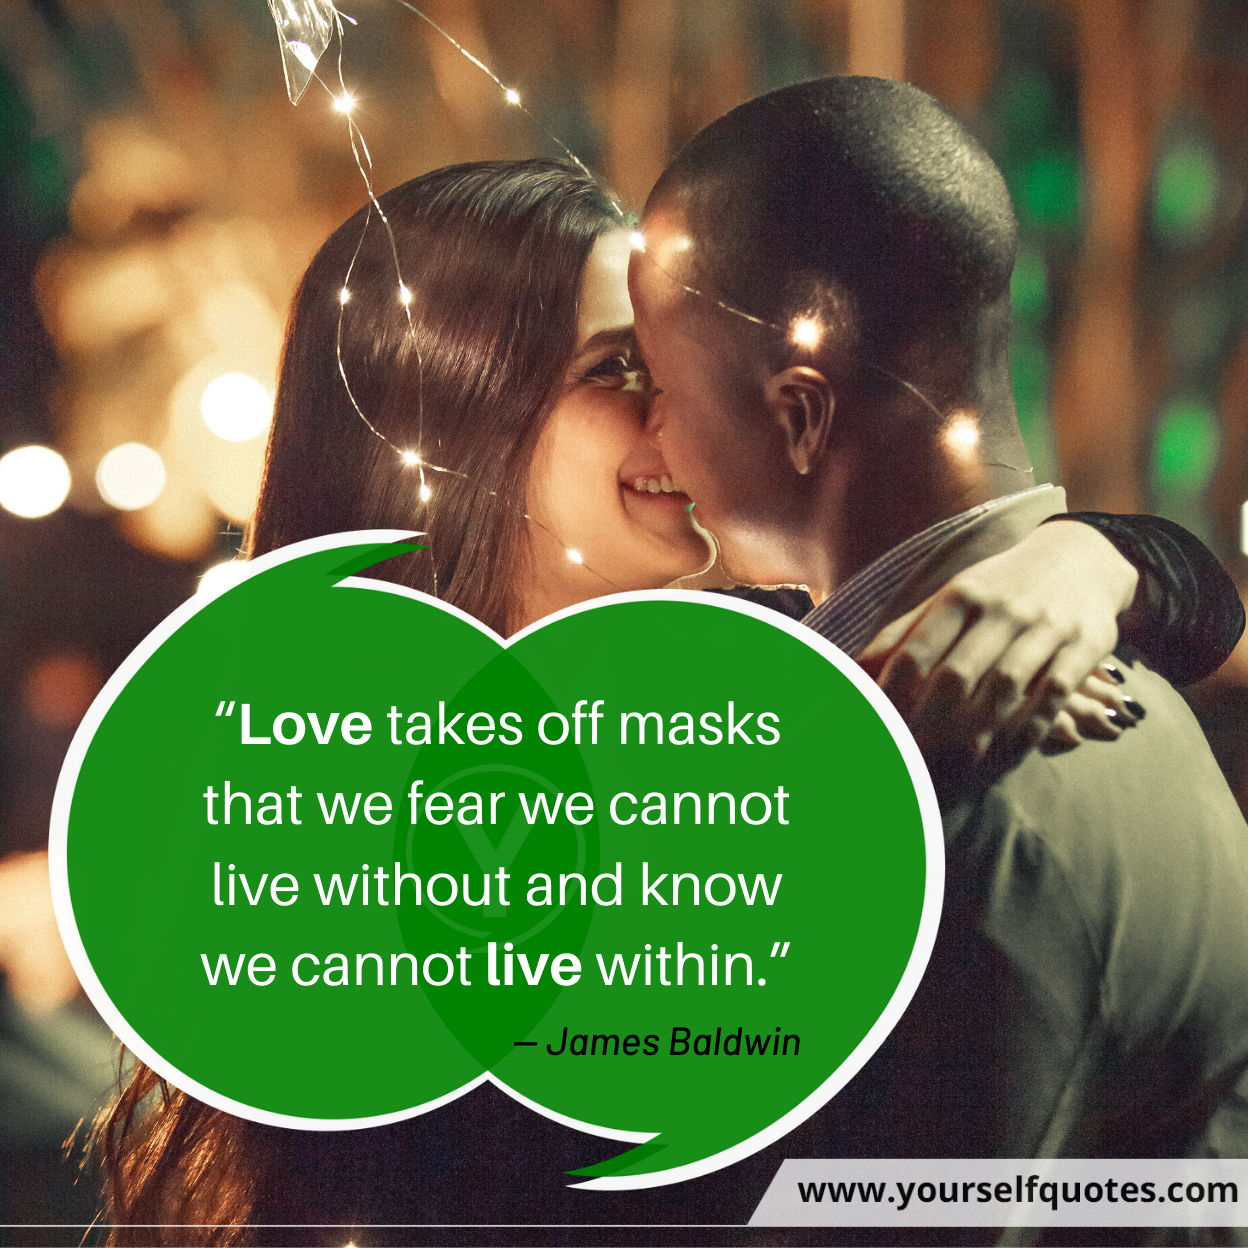 Quotes on Love by James Baldwin